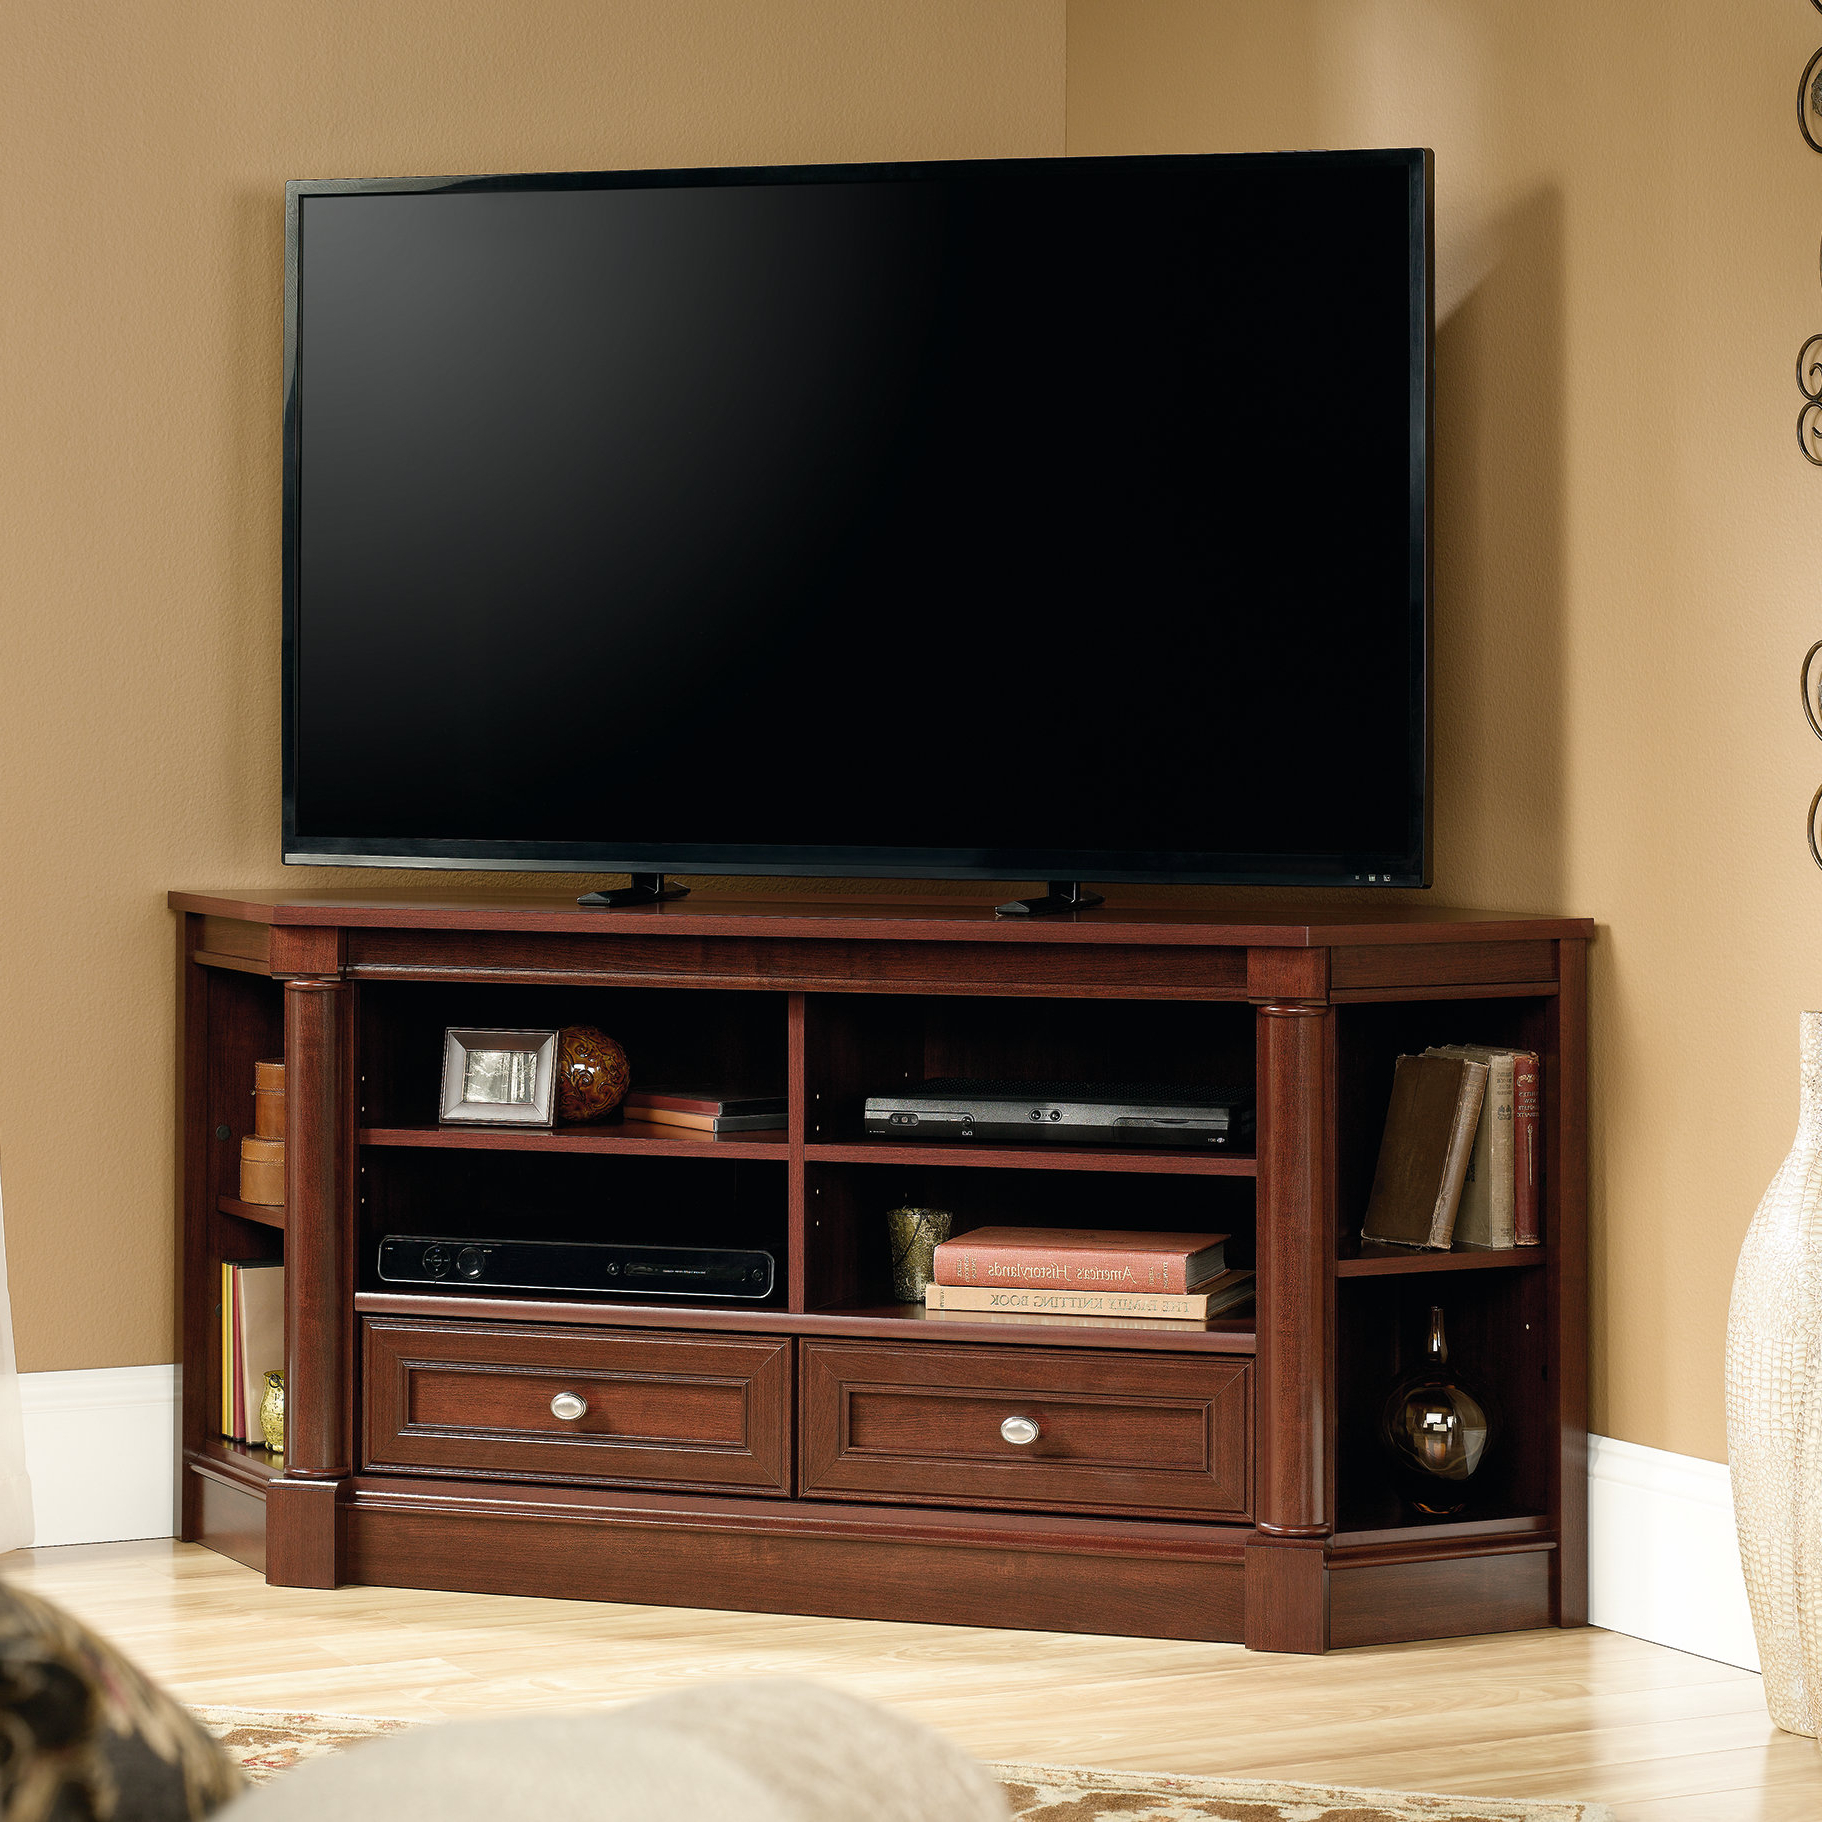 Wayfair Inside Corner Tv Stands (View 16 of 20)